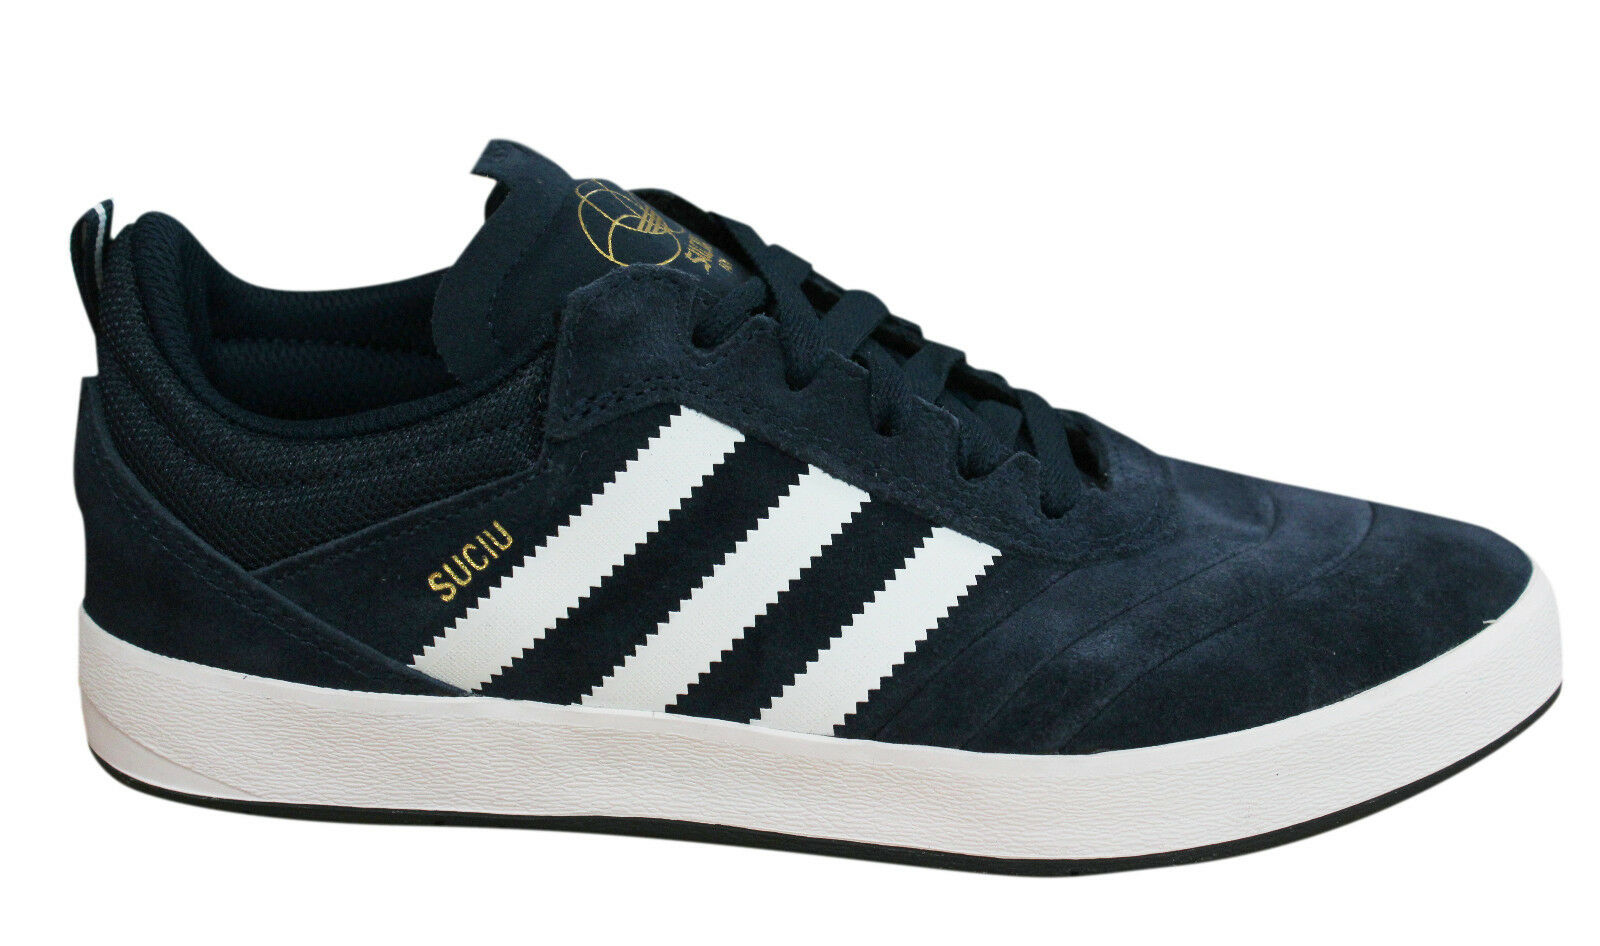 Adidas Originals Suciu Profi Herren Trainers Marineblau Blue Wildleder BY3935